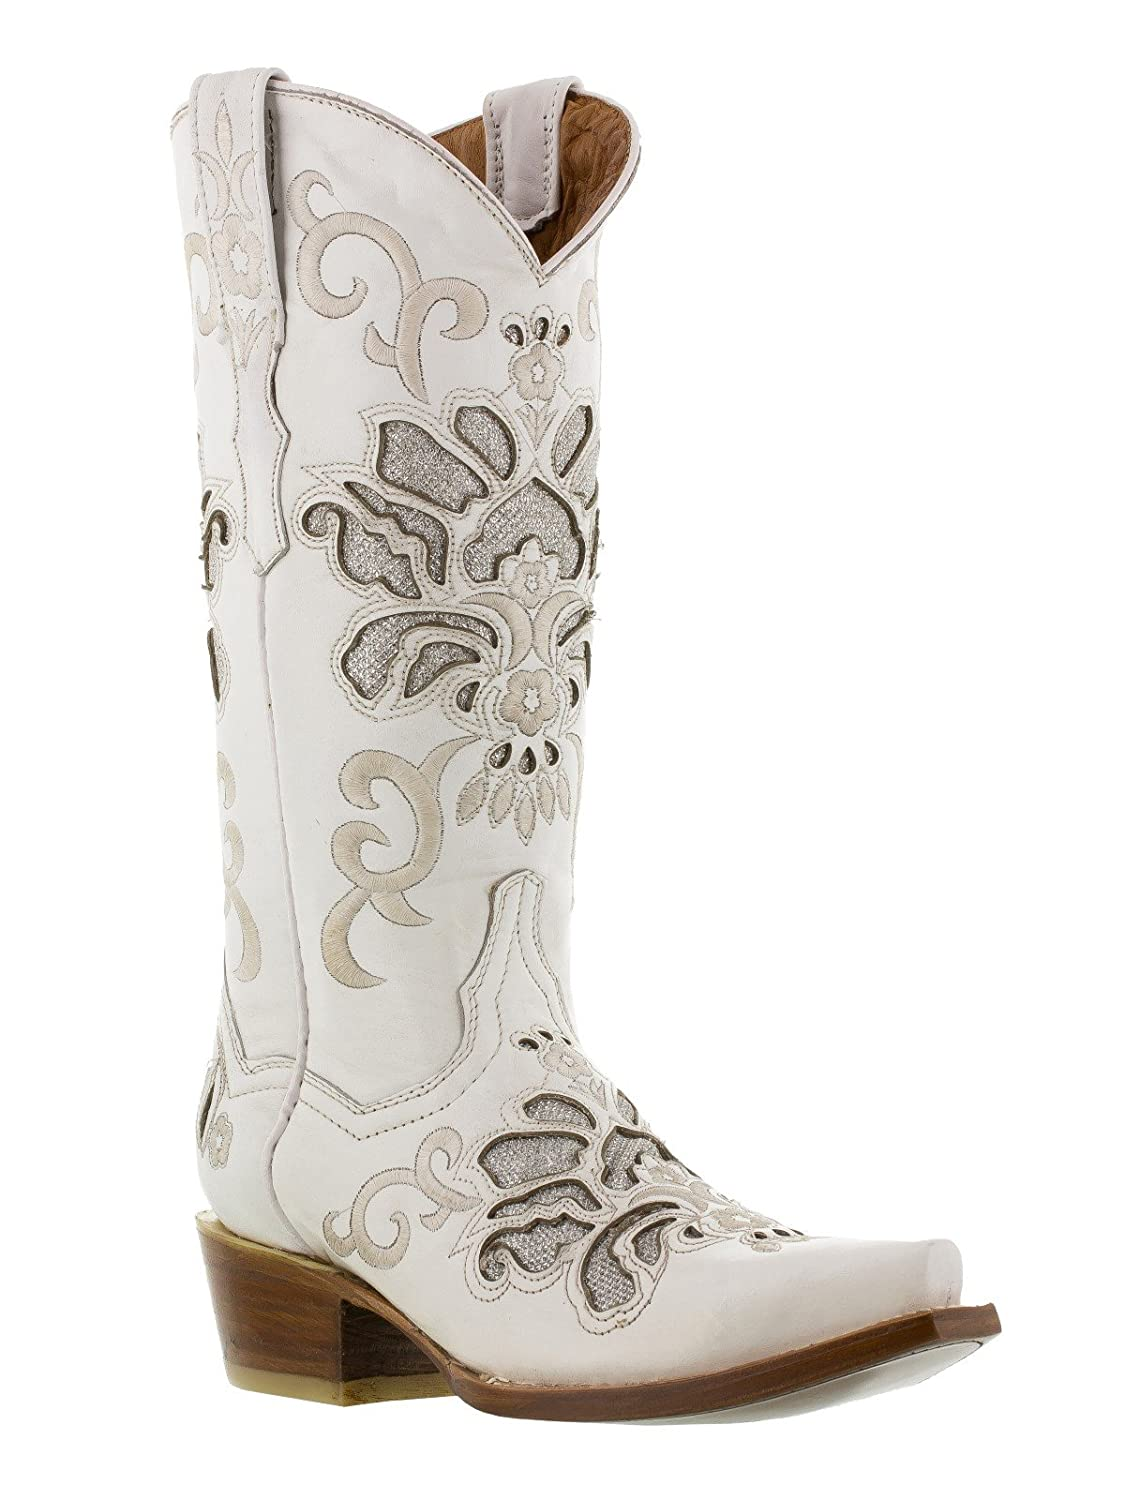 Cowboy Professional - Women's White Arabe Overlay Western Leather Cowboy Boots Snip Toe